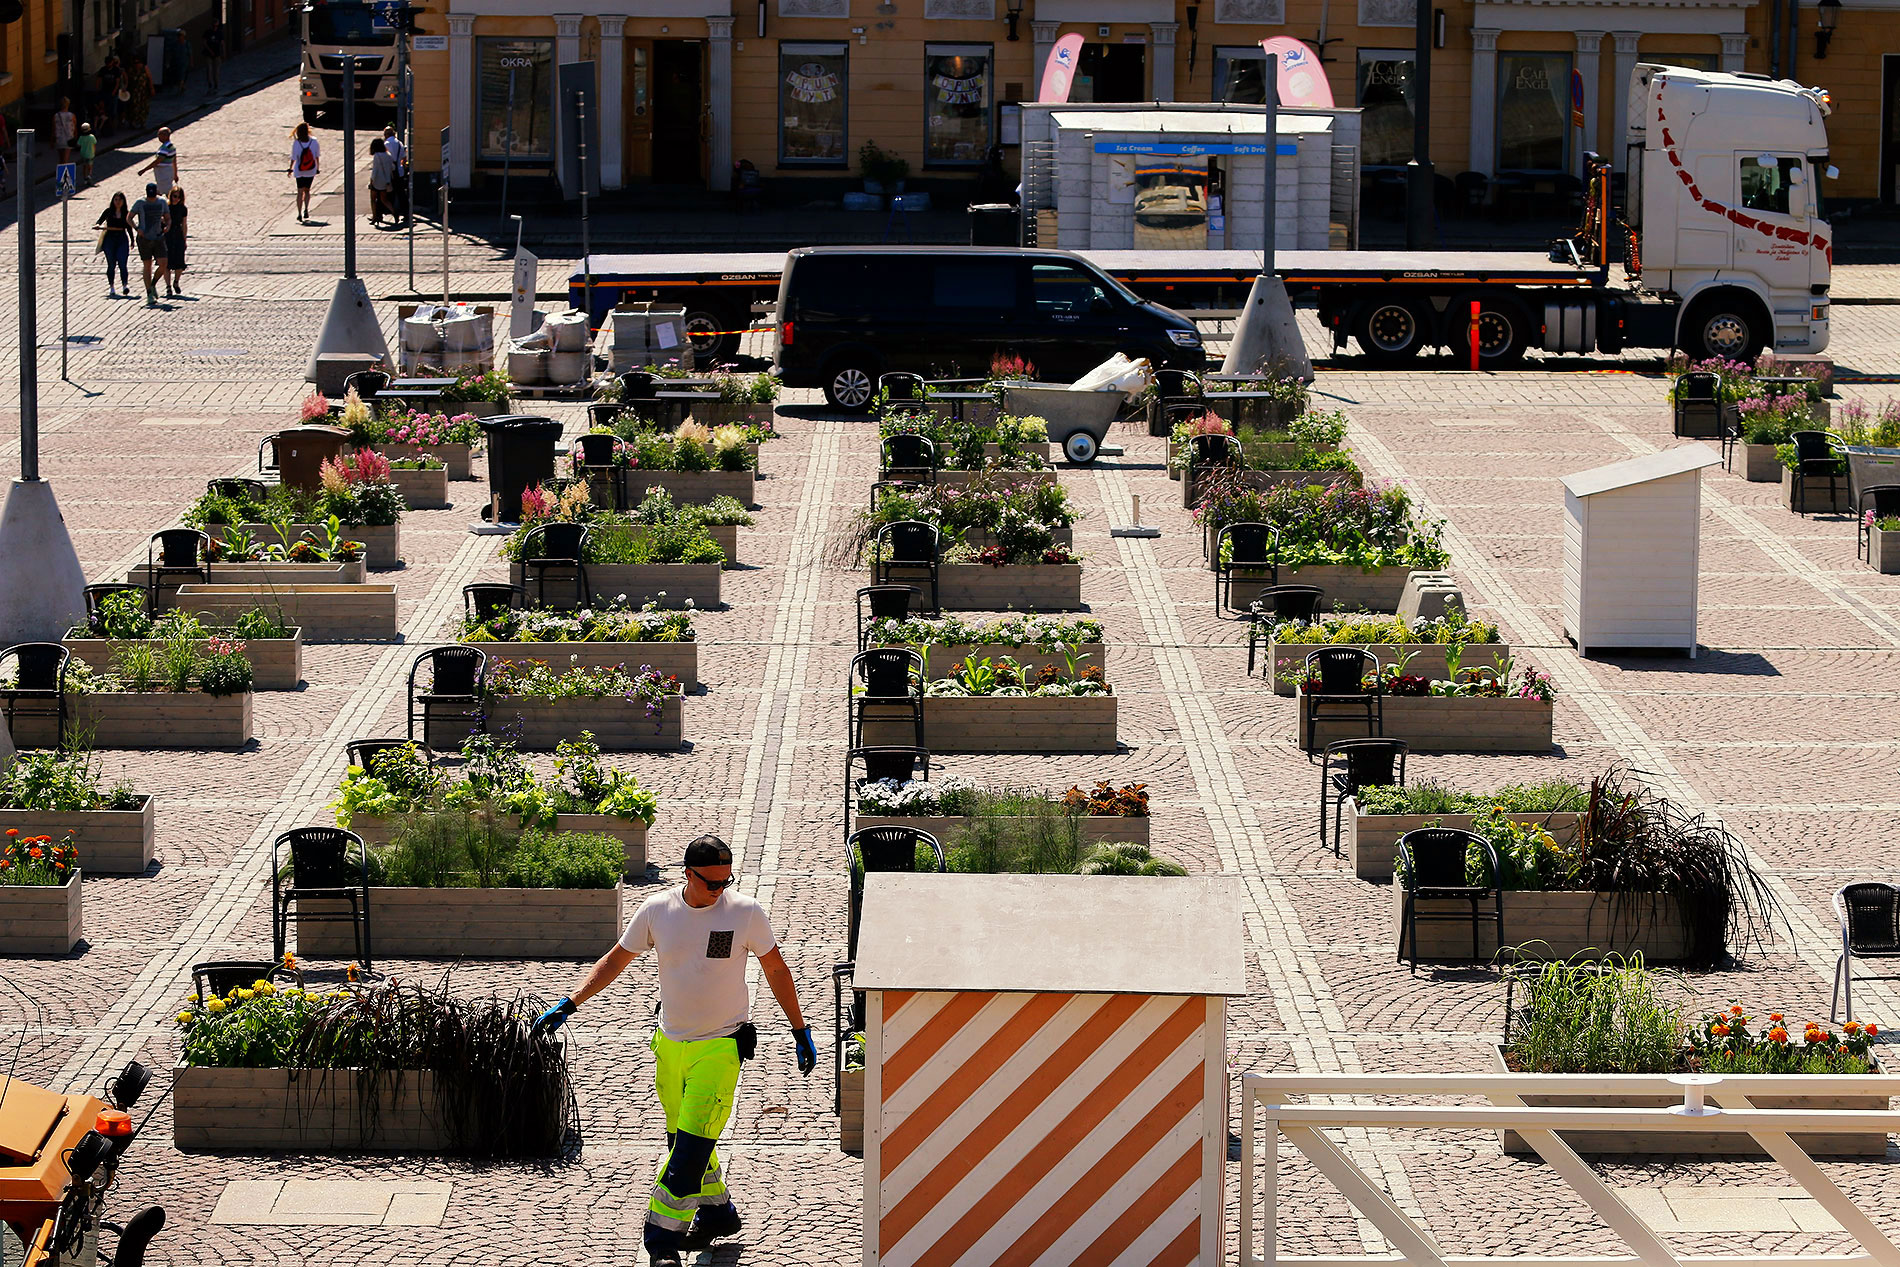 The Senate Square consists of of a grid of 3 x 3 meter squares. This provides a clear basis for the individual gardens. Picture: Tony Öhberg/Finland Today